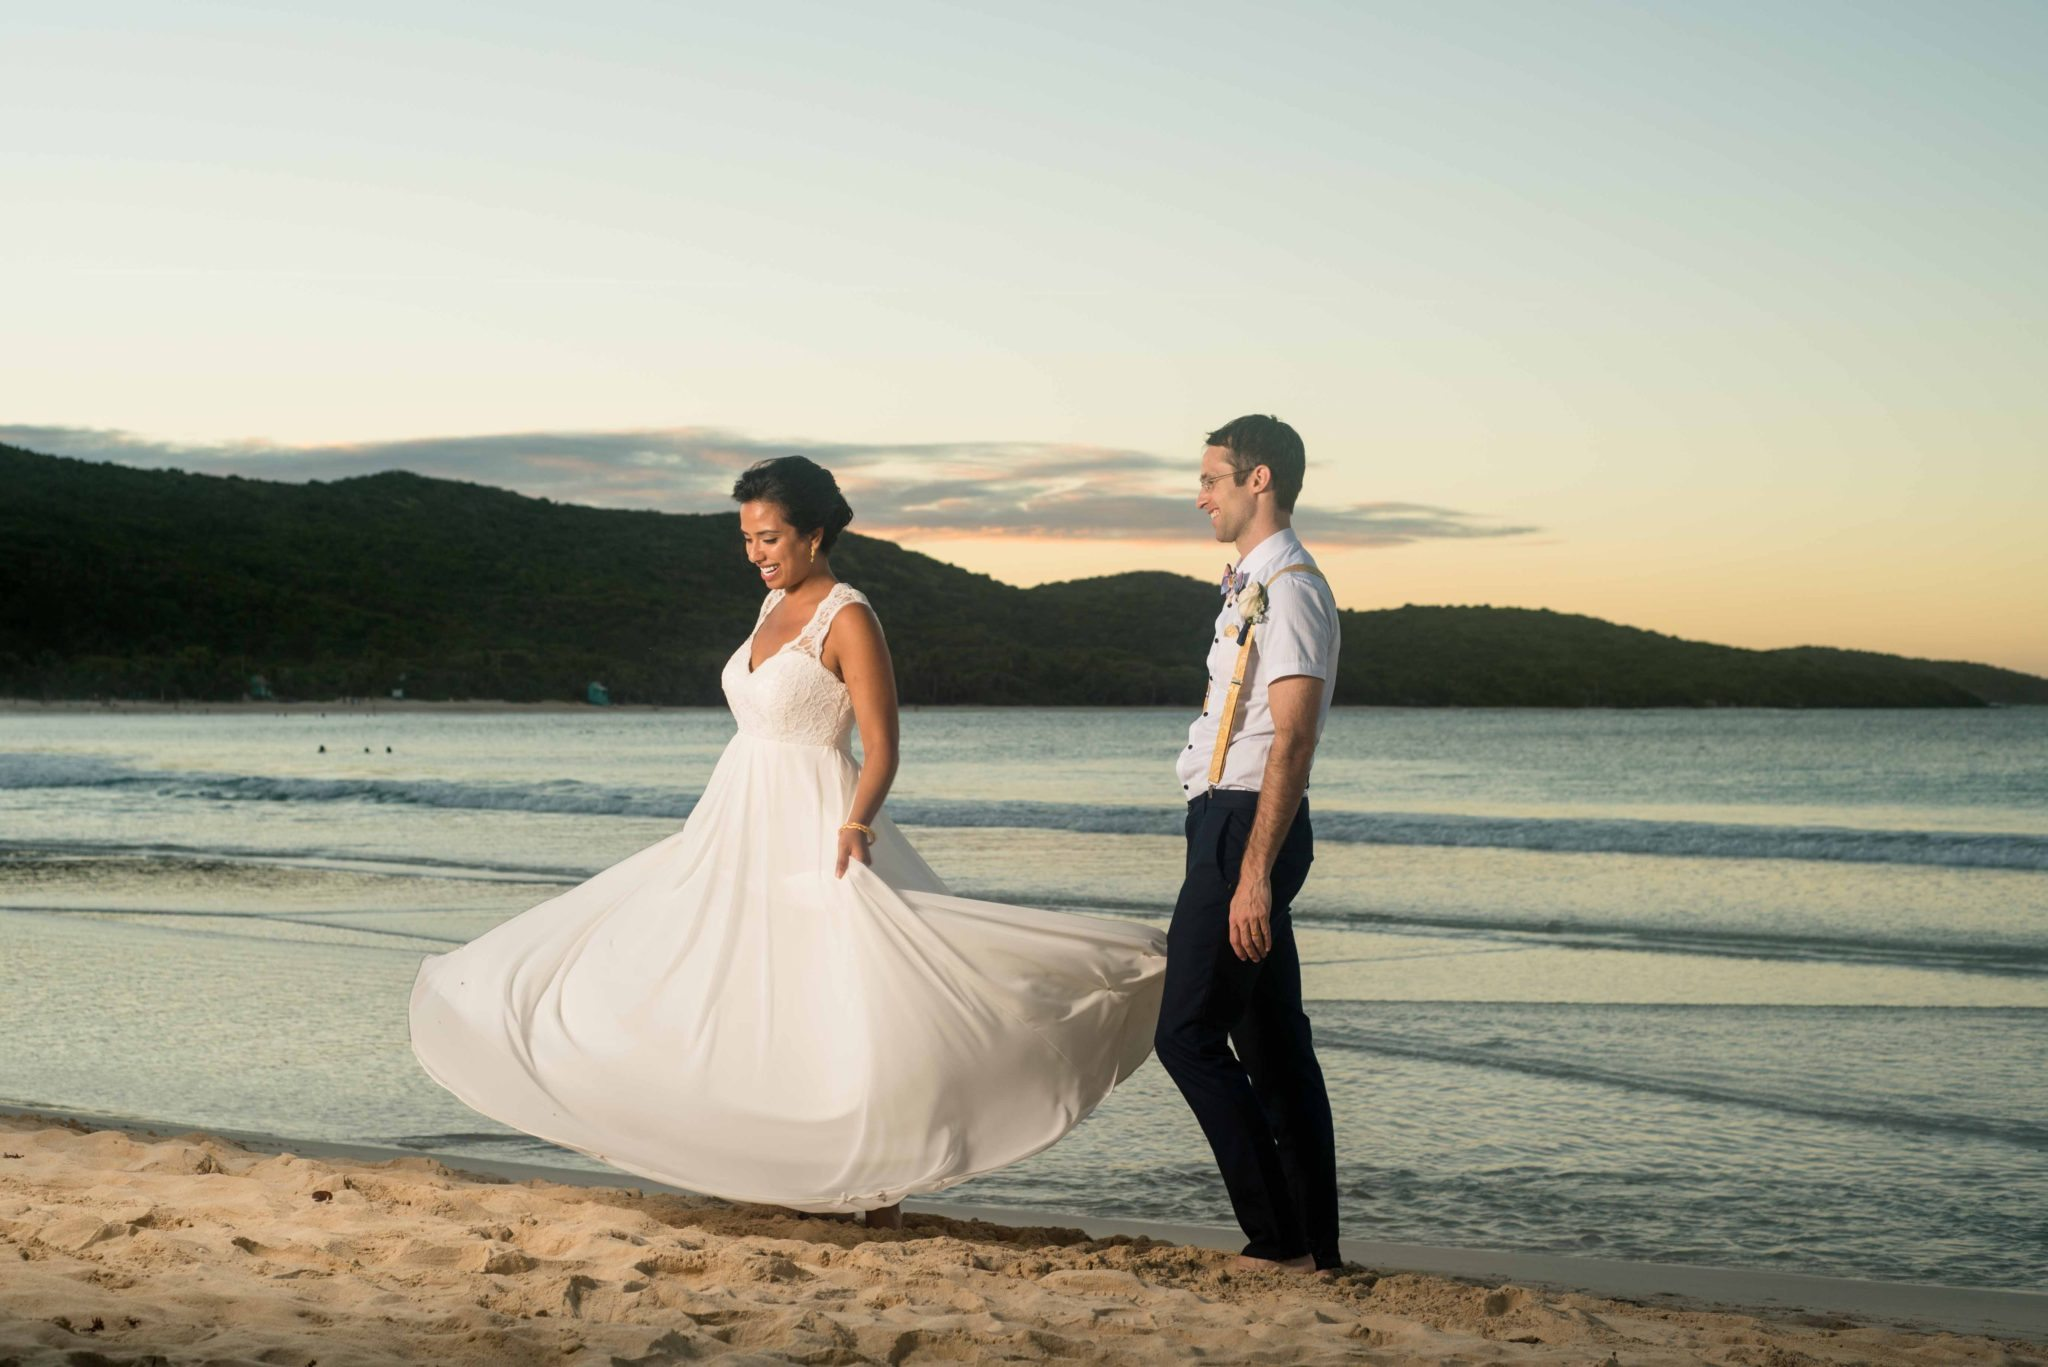 Couples photography destination wedding